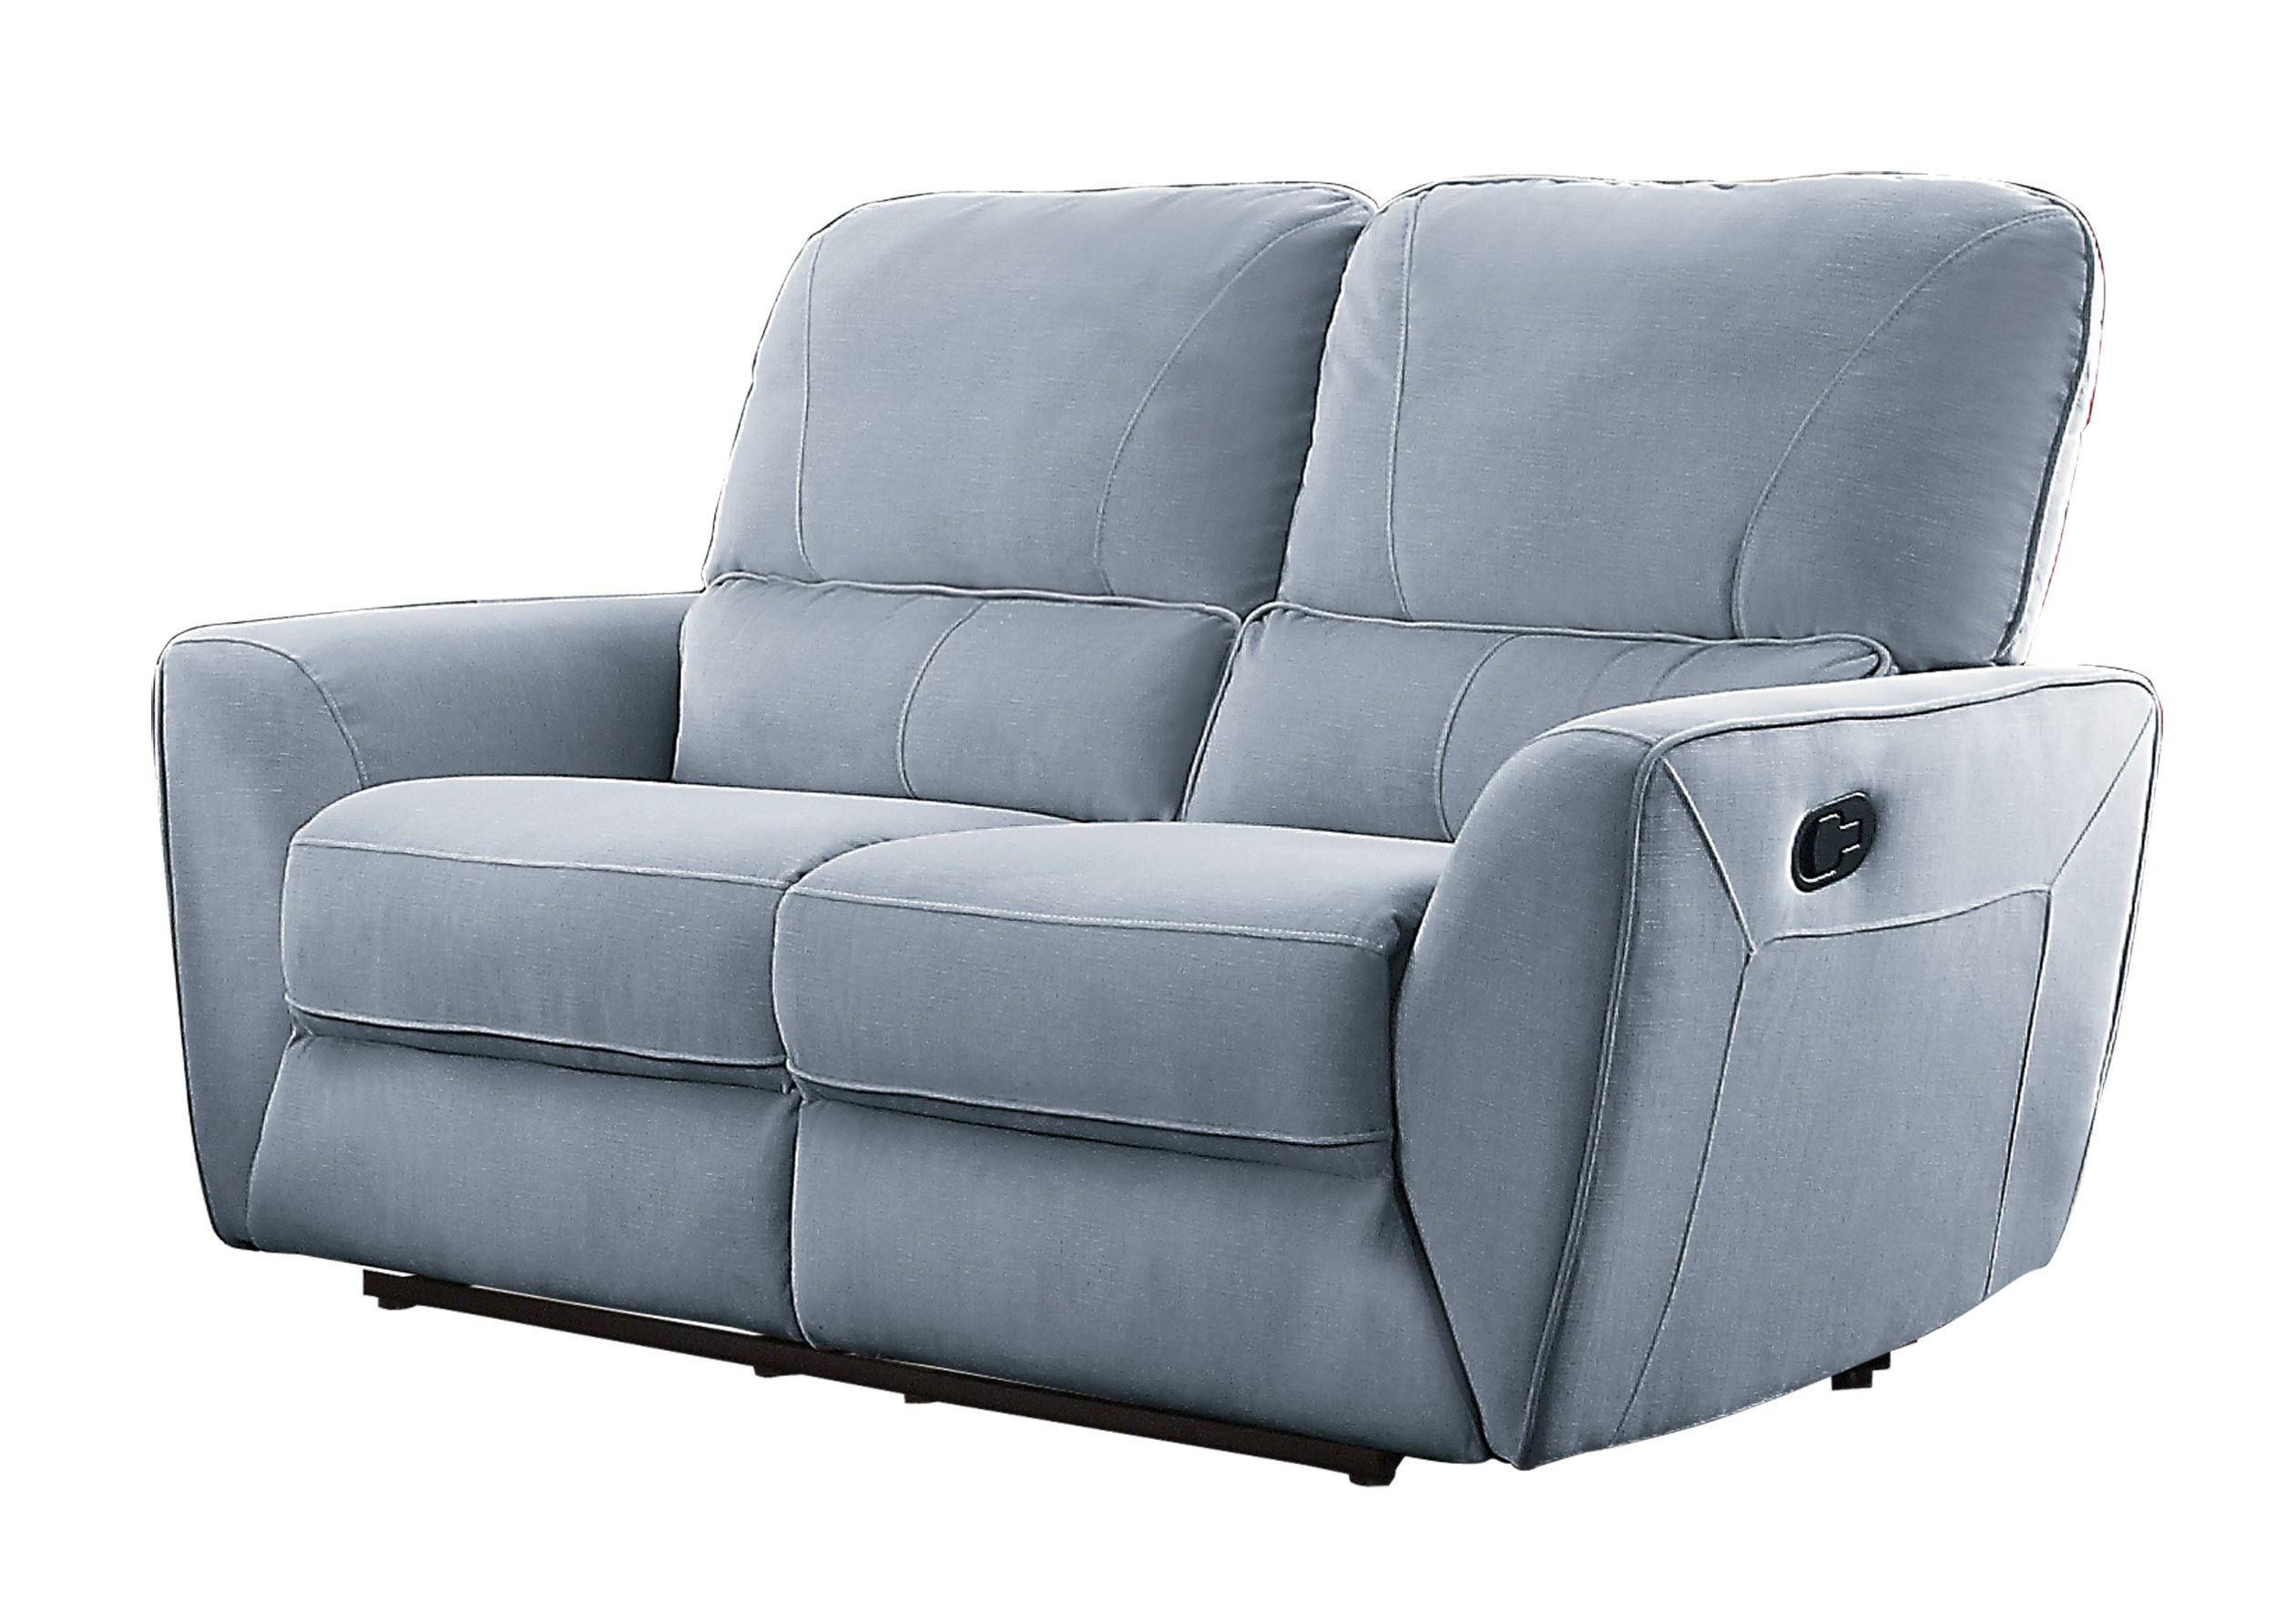 Homelegance Dowling 63'' Fabric Upholstered Reclining Loveseat, Gray